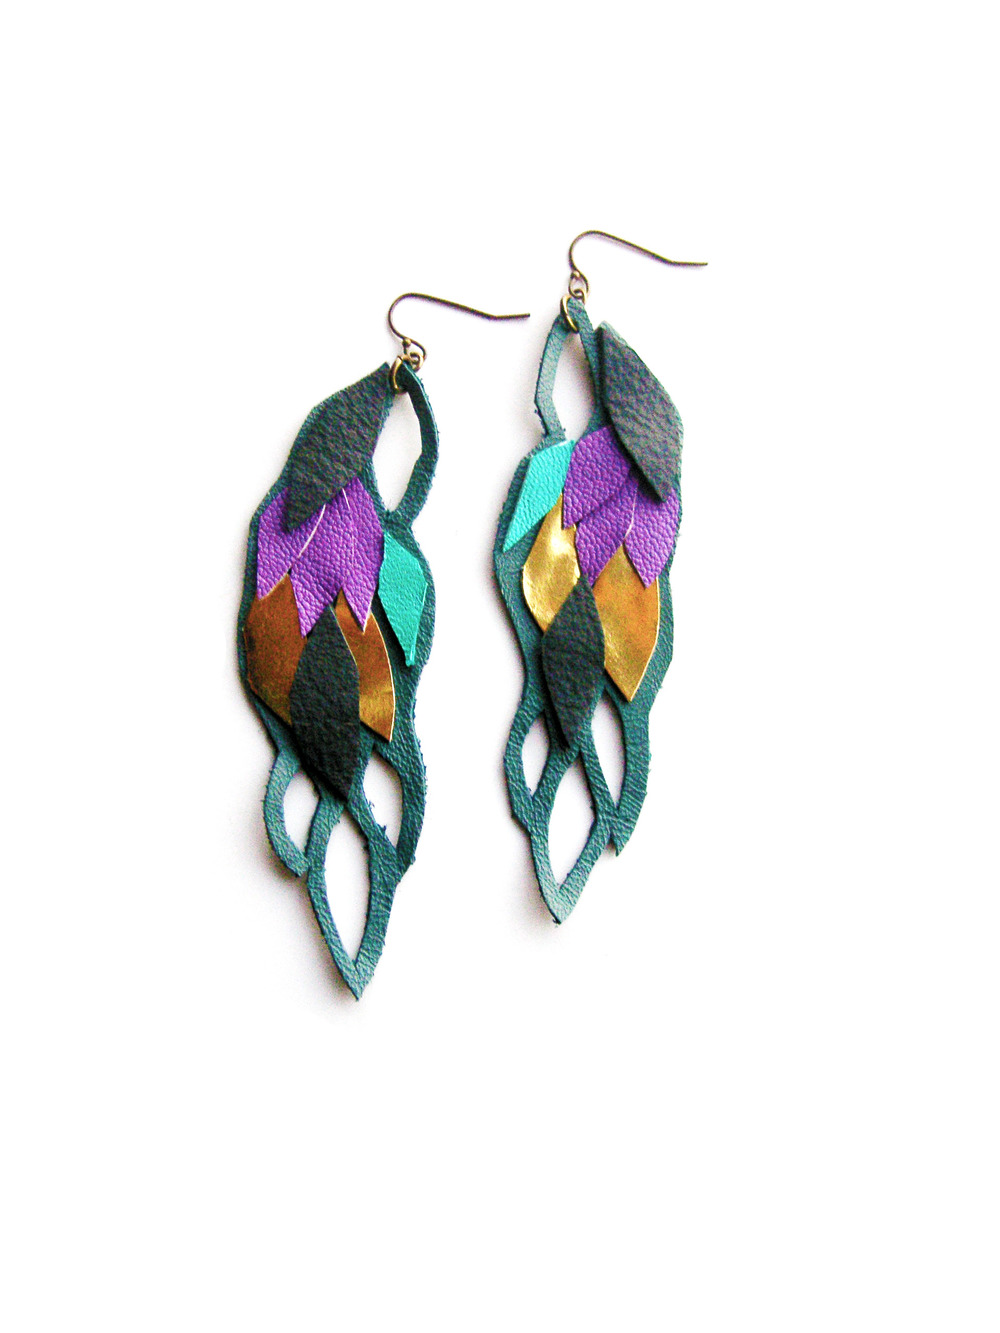 Geometric Leather Earrings Armor Wings.jpg